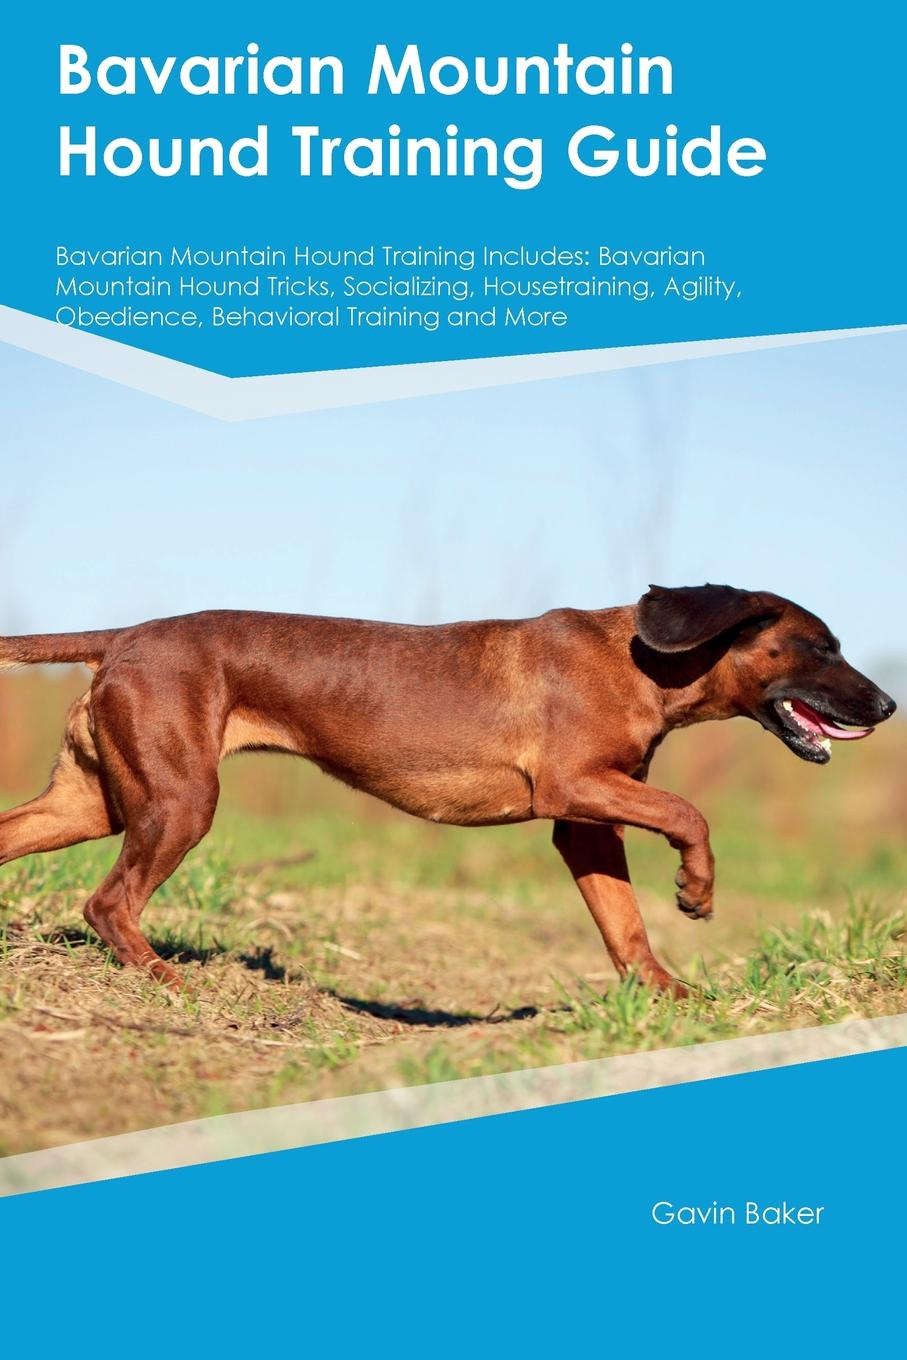 Phil Martin Bavarian Mountain Hound Training Guide Bavarian Mountain Hound Training Includes. Bavarian Mountain Hound Tricks, Socializing, Housetraining, Agility, Obedience, Behavioral Training and More gail martin gaymer bride in training